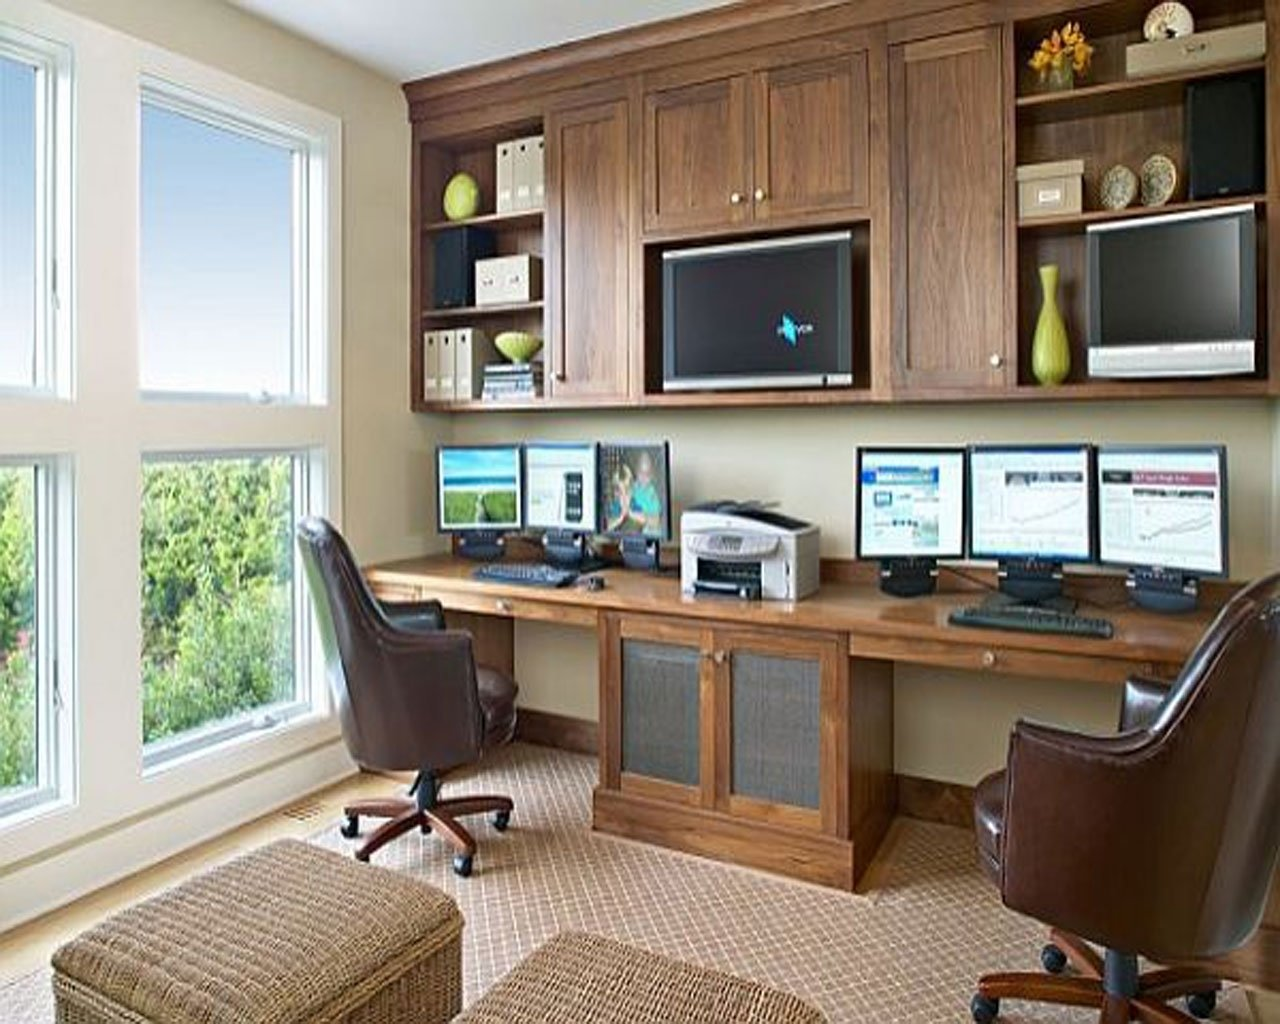 10 Stunning Home Office Ideas Small Spaces home office ideas for small space classy design httpklosteria comwp 2 2020